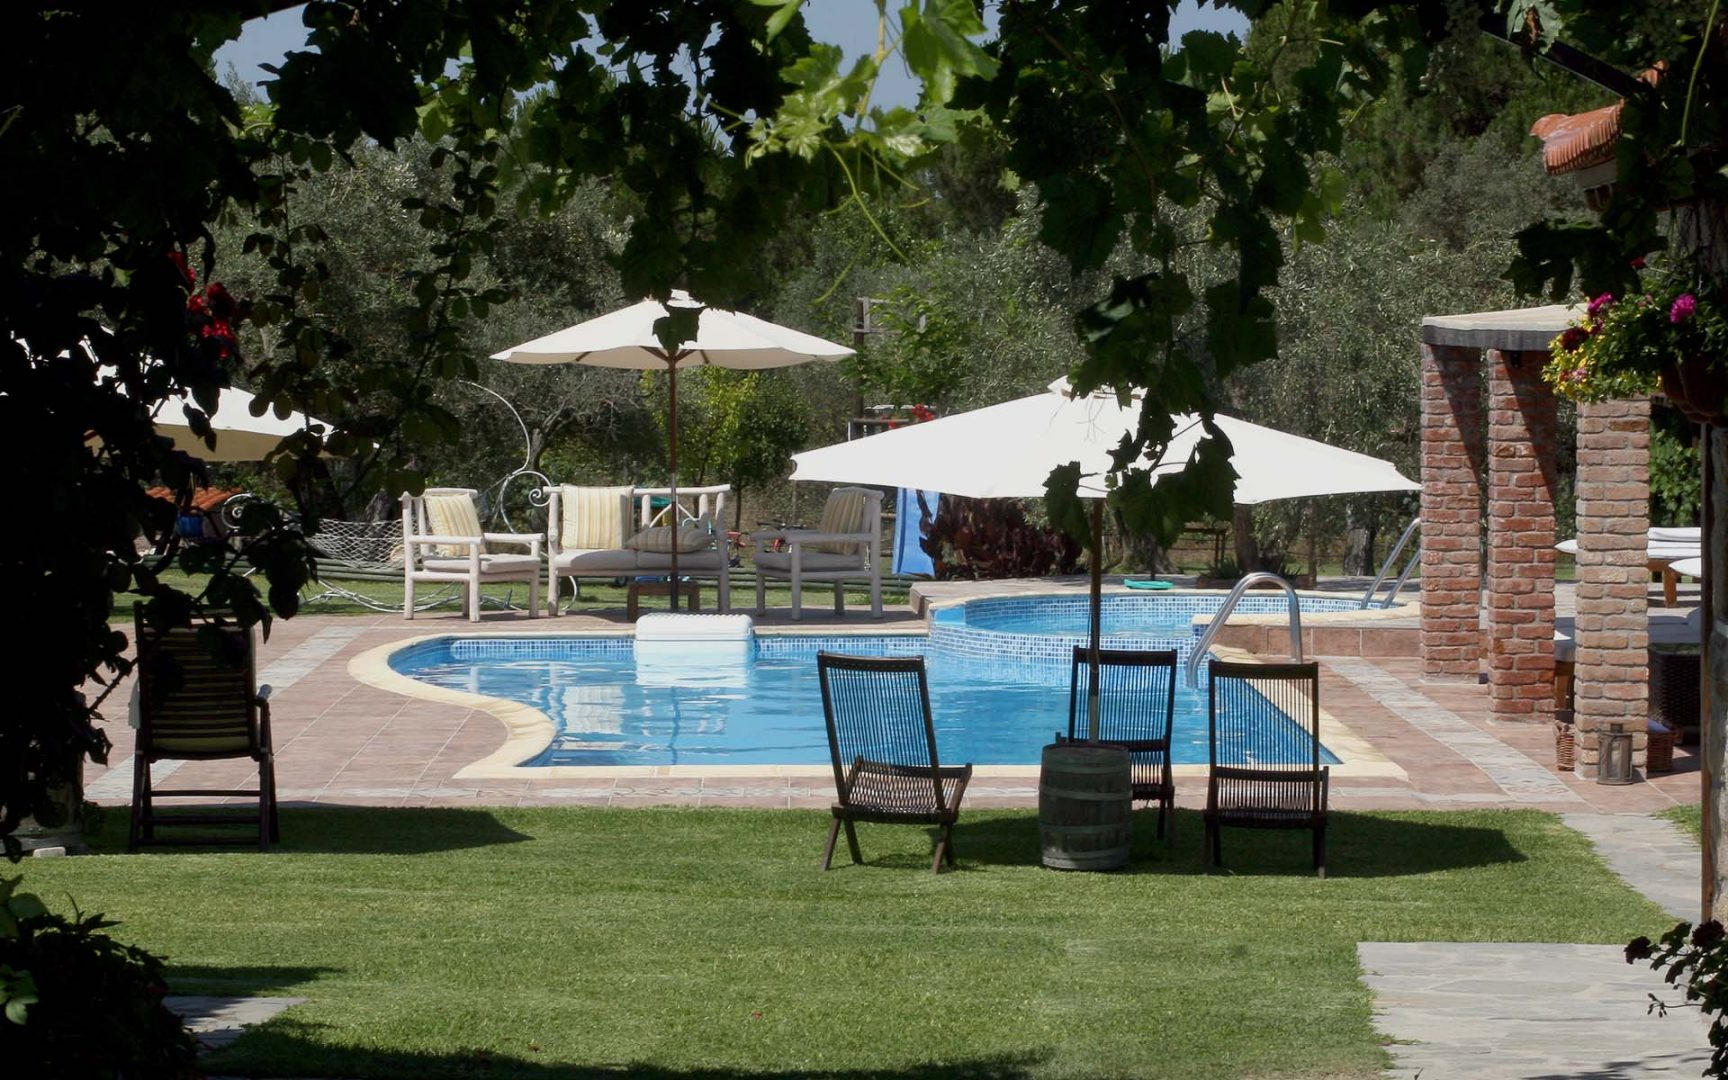 Six acres surrounded by ancient olive trees and vineyards